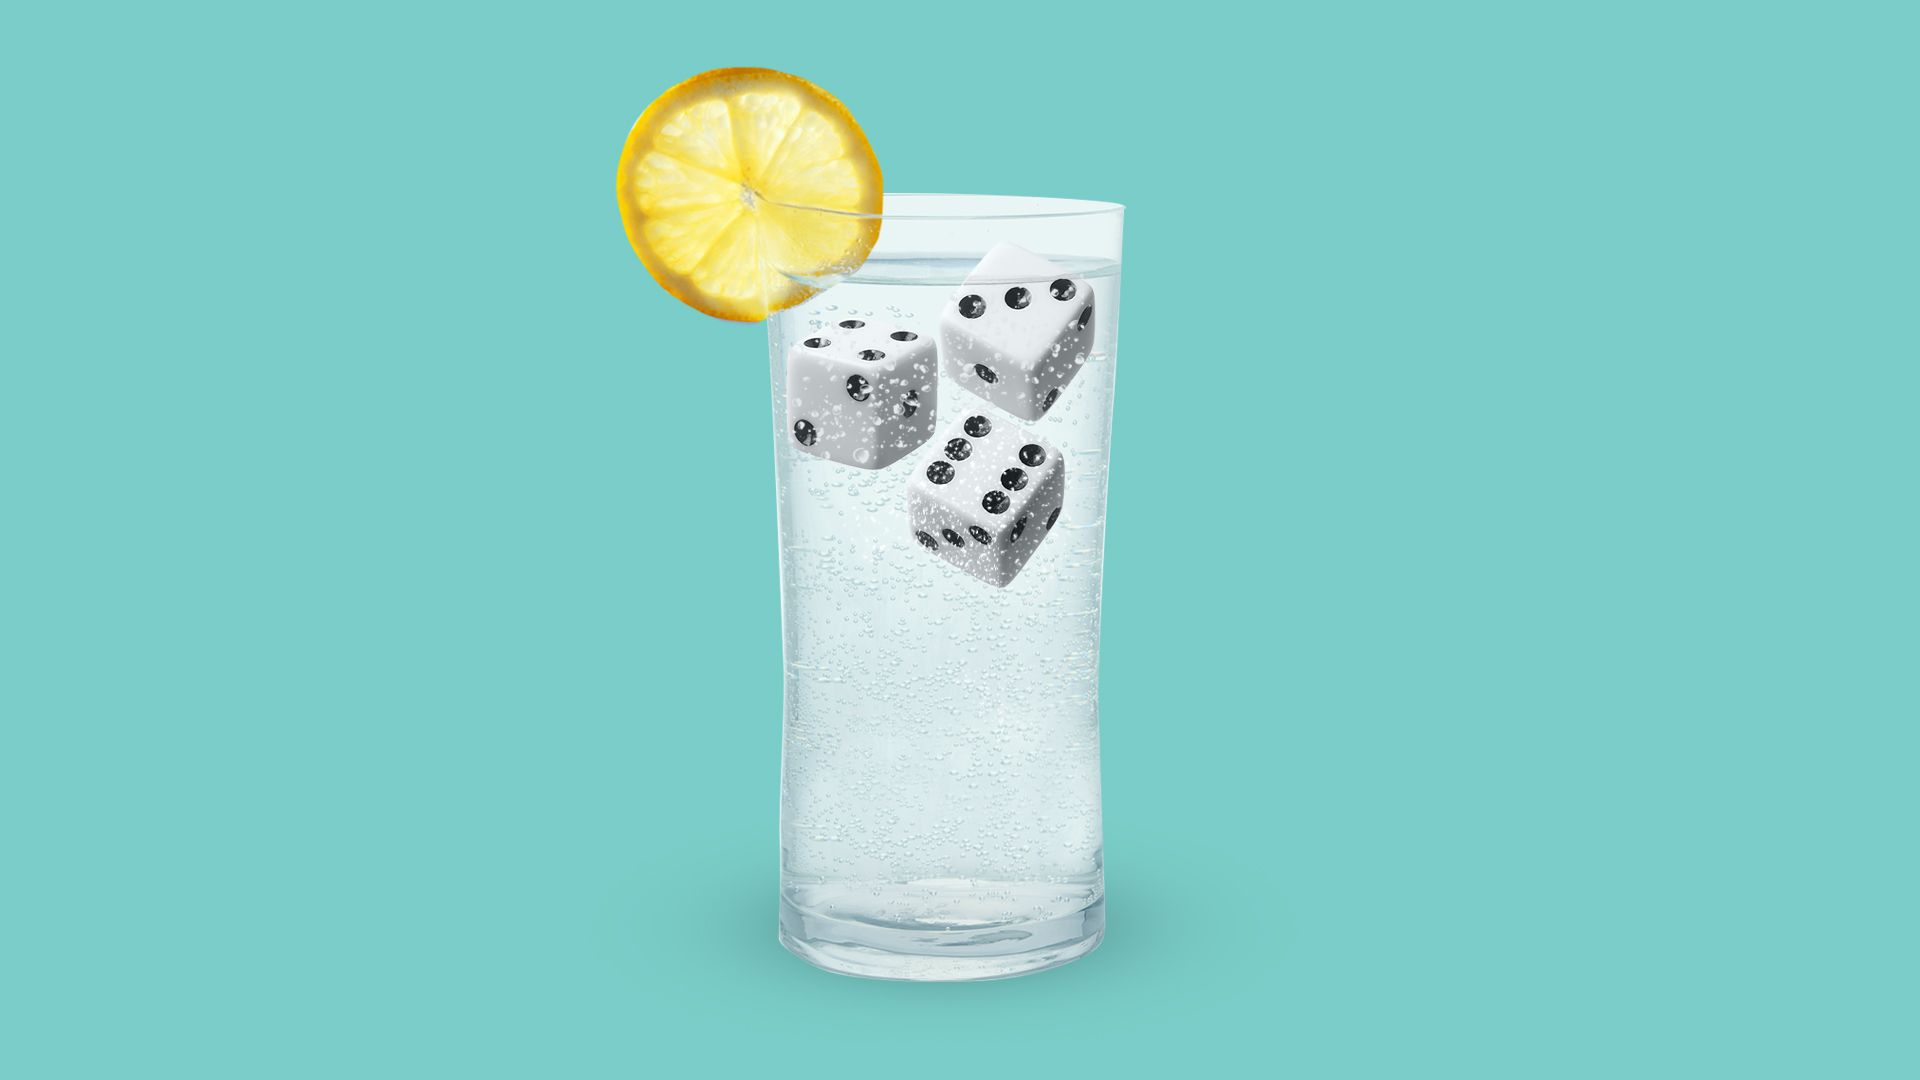 Illustration of a glass of seltzer with dice as ice cubes